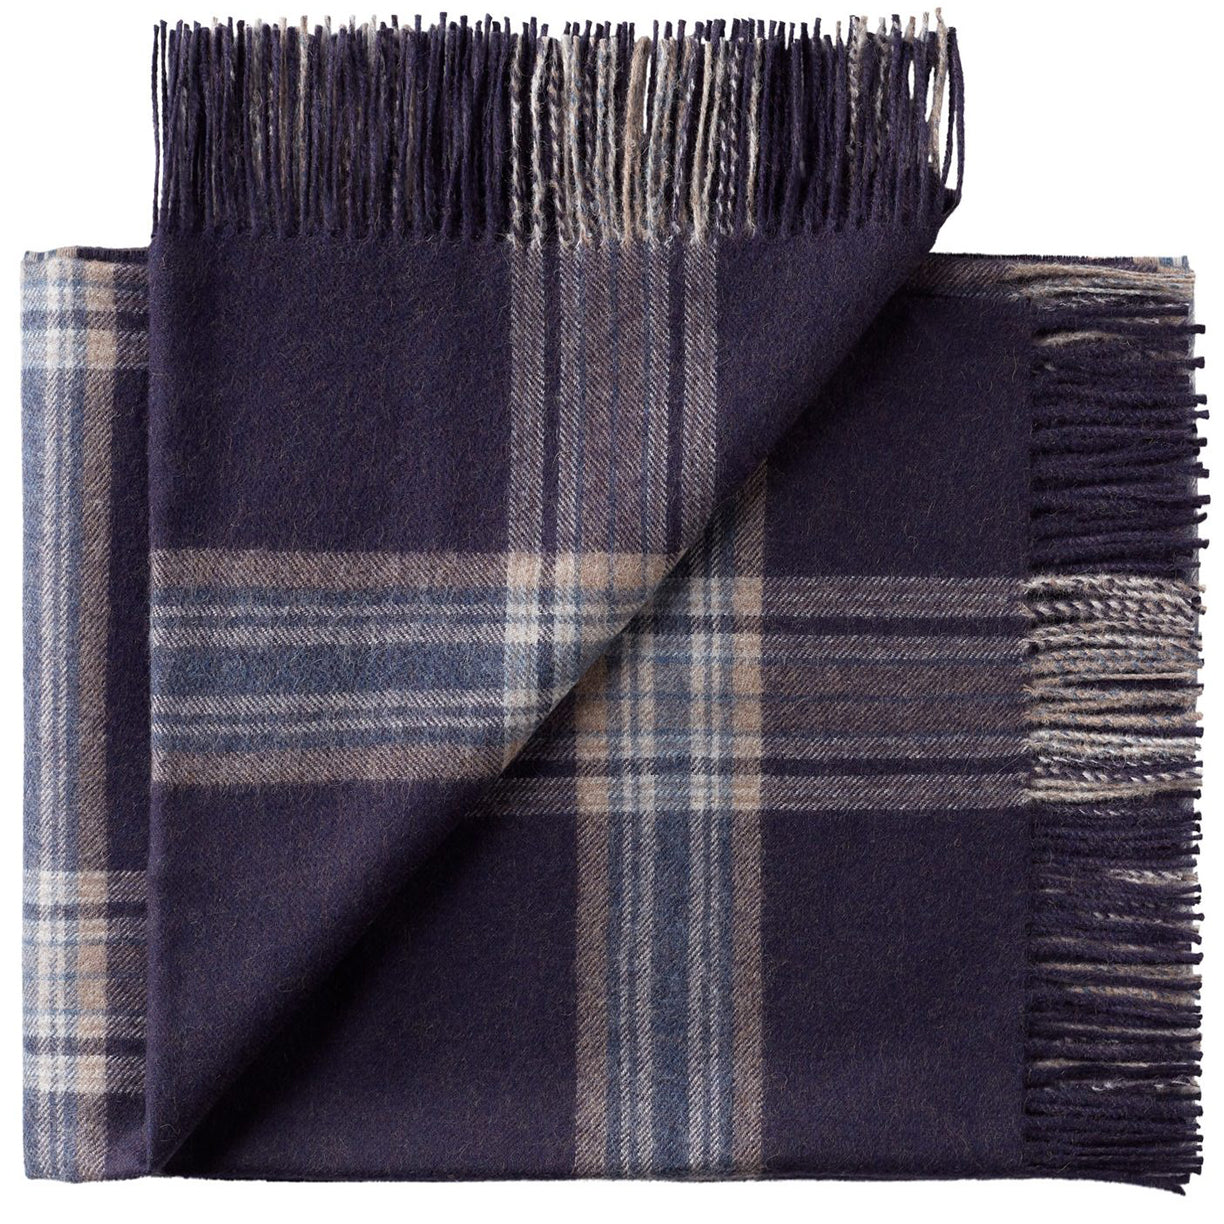 Soft Alpaca Wool Throw Blanket Blue and Tan Plaid